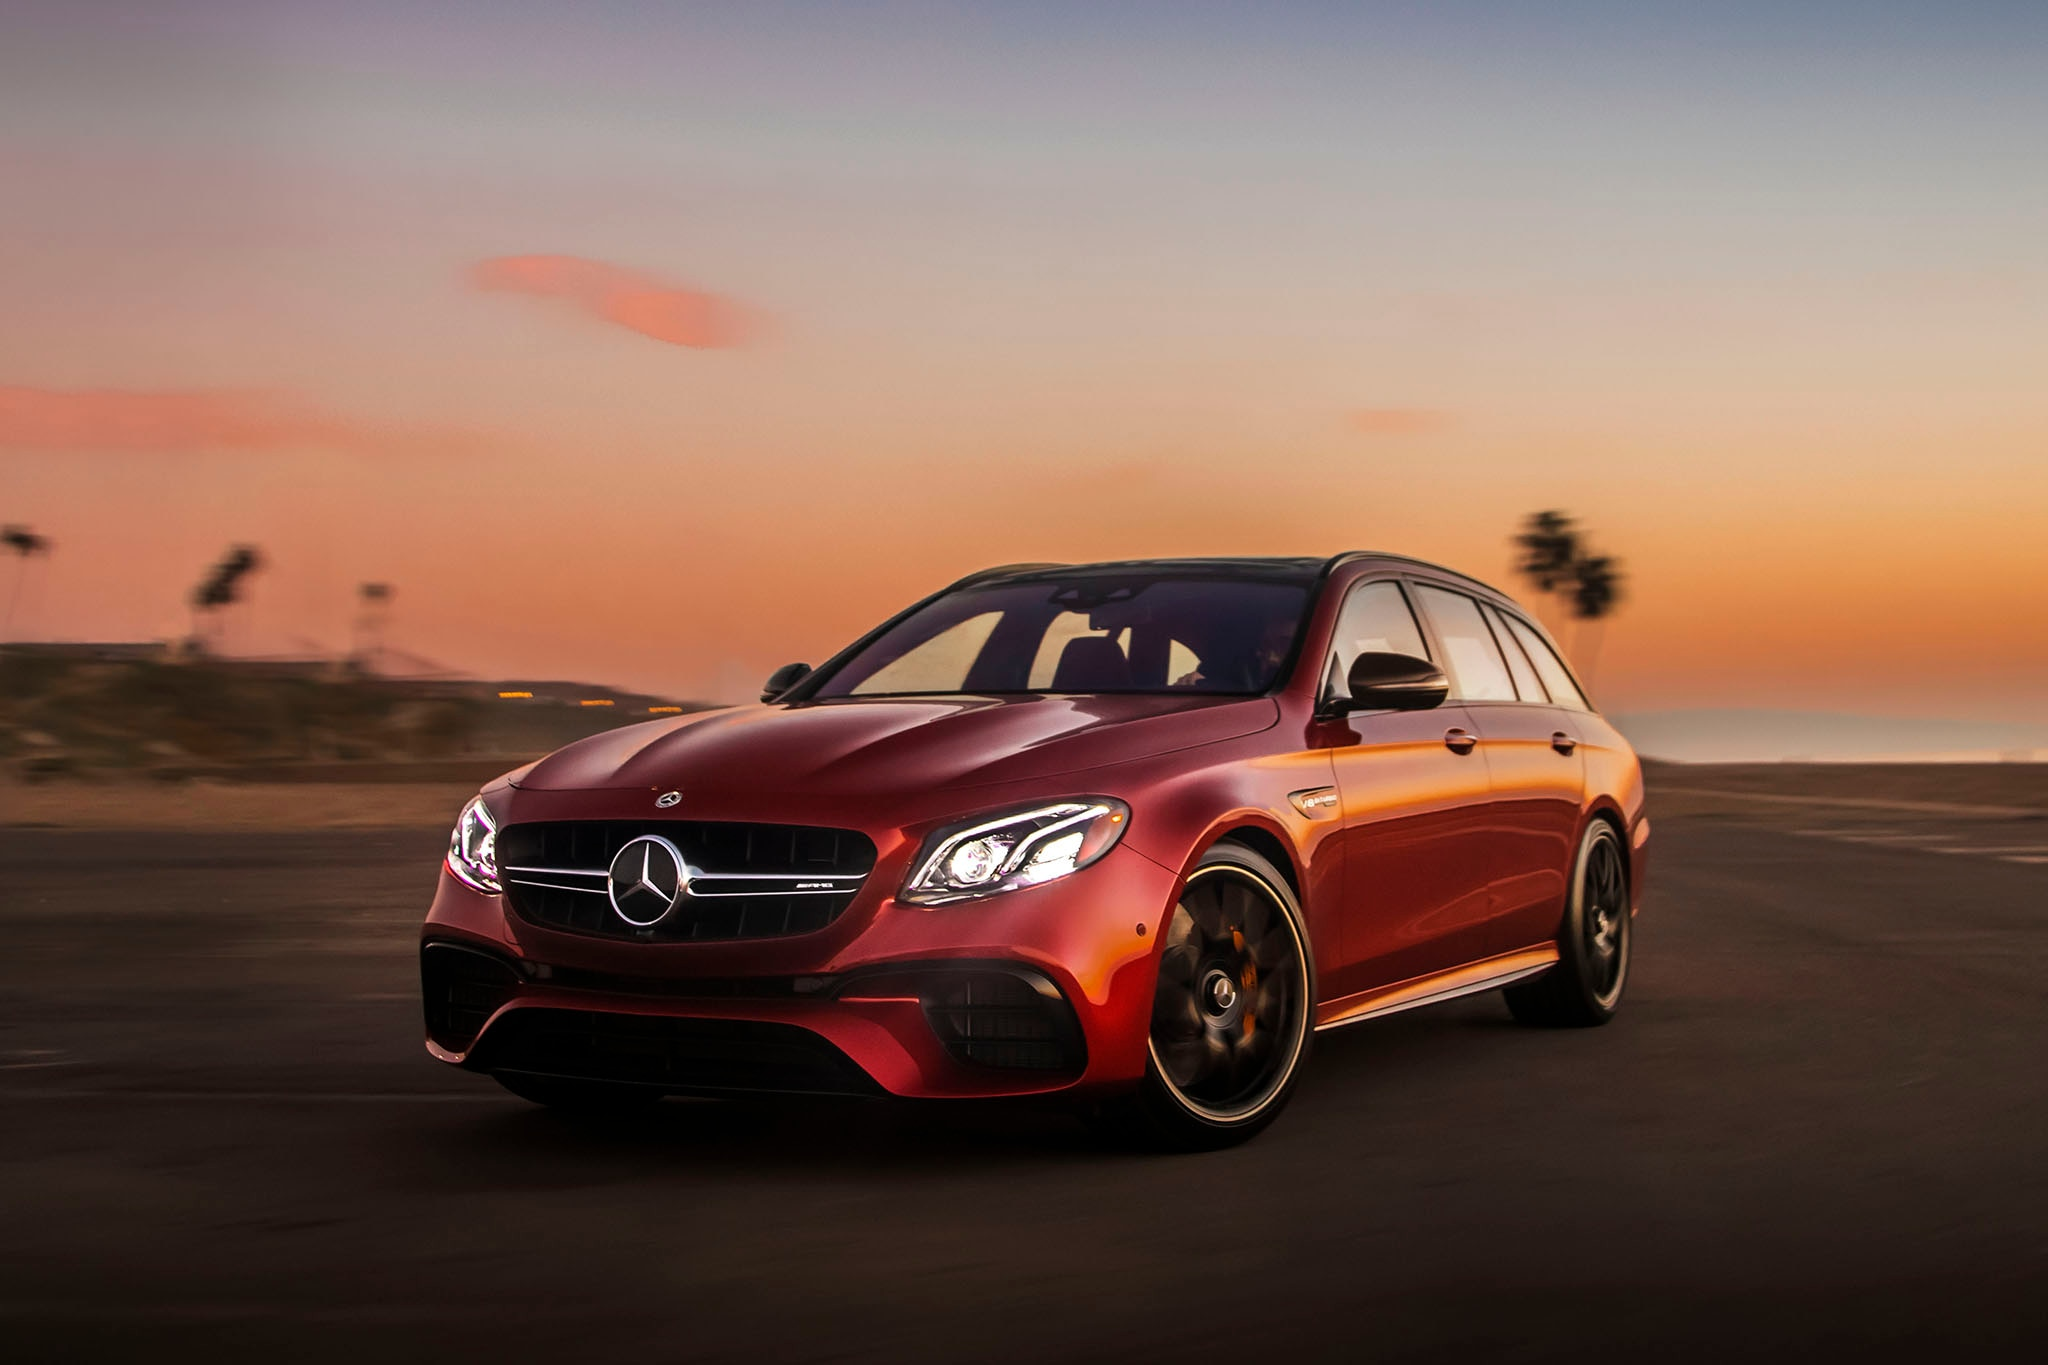 2018 Mercedes Amg E63 S Wagon Priced From 107 945 Automobile Magazine